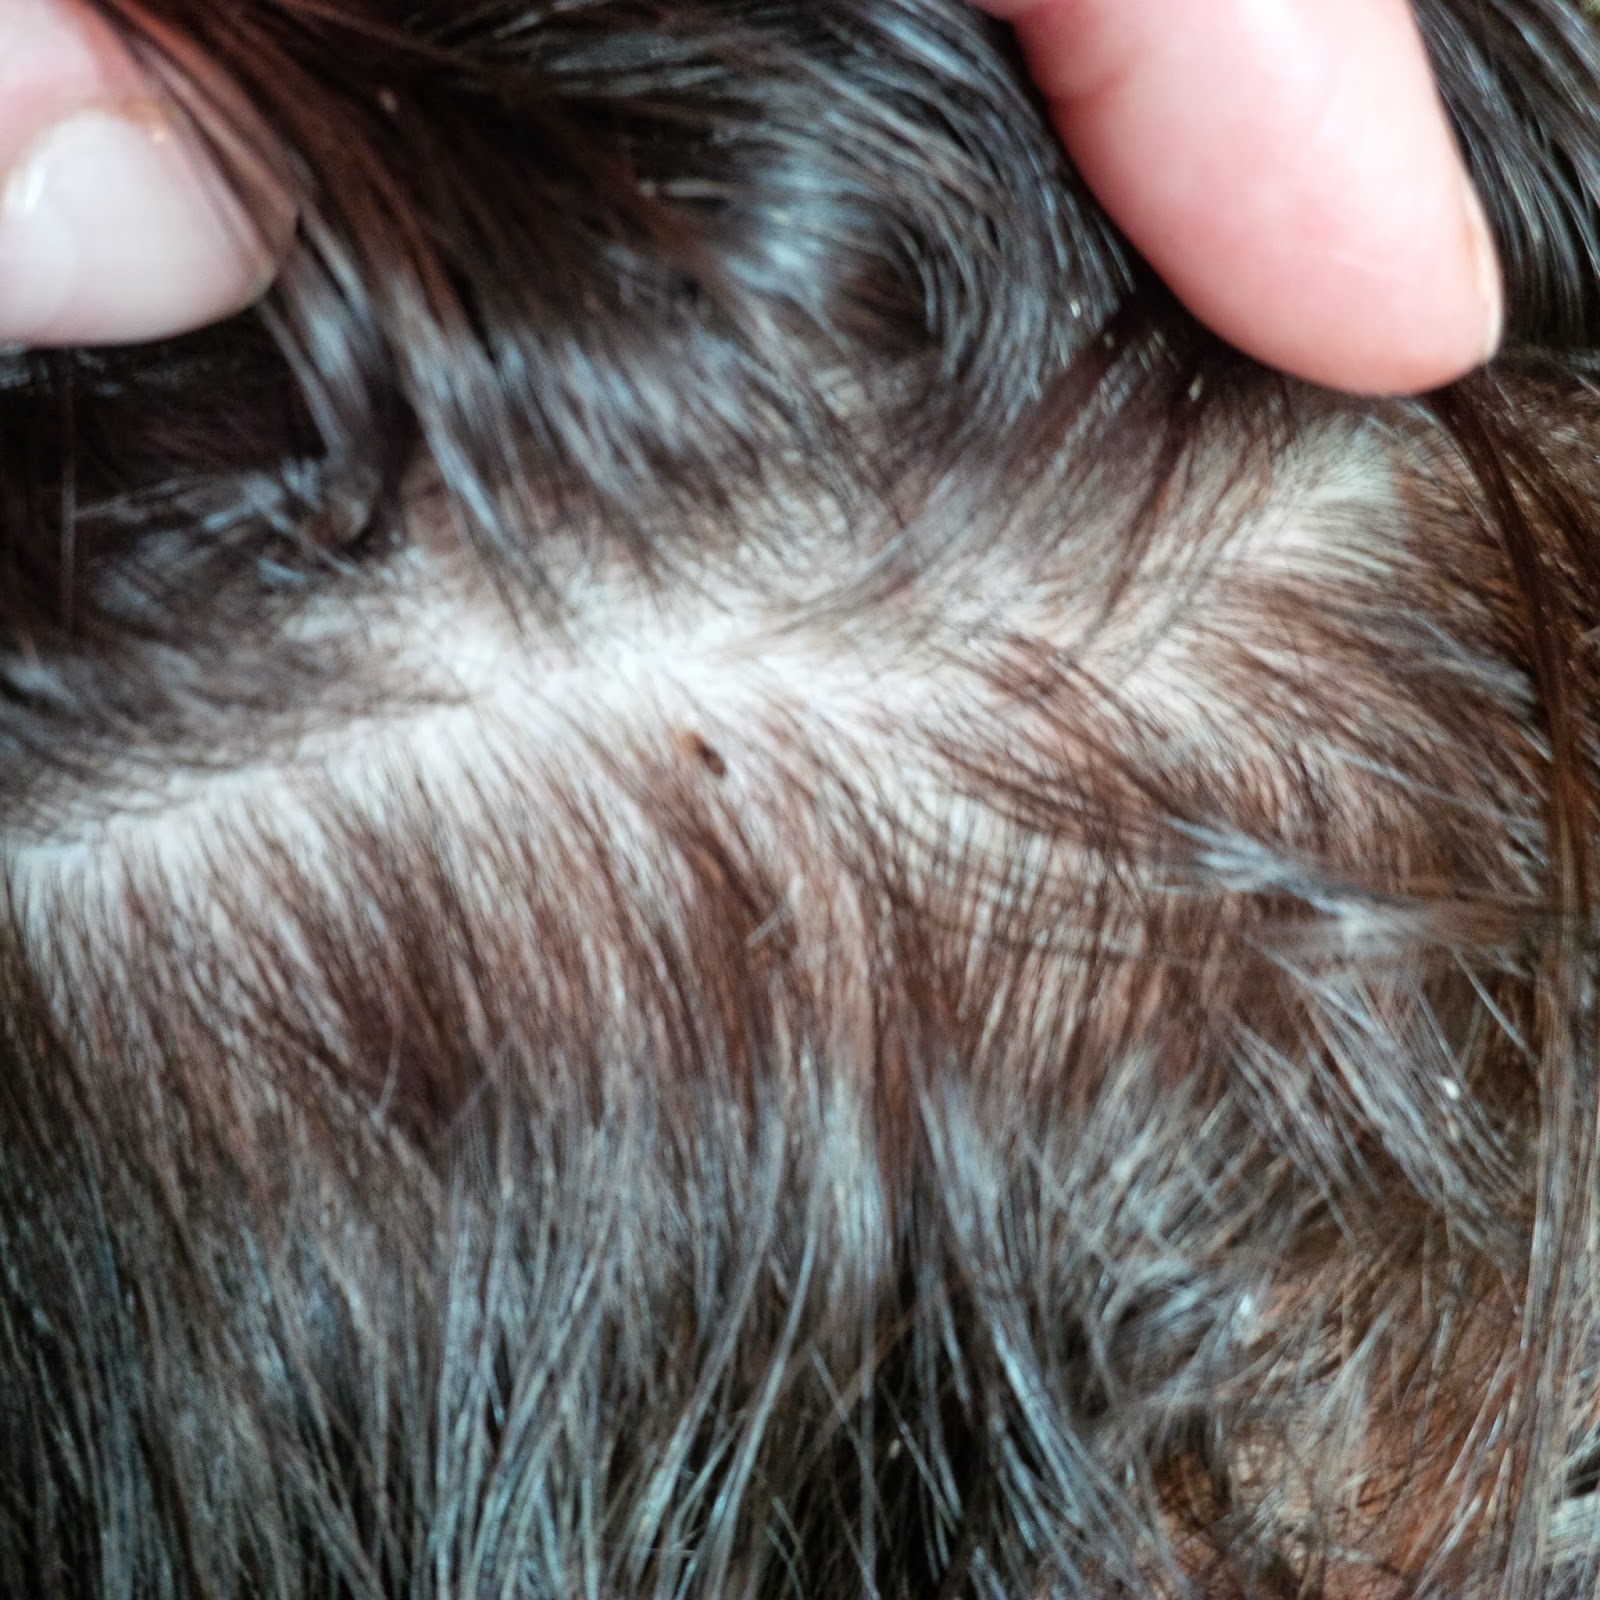 how to tell lice eggs from dandruff